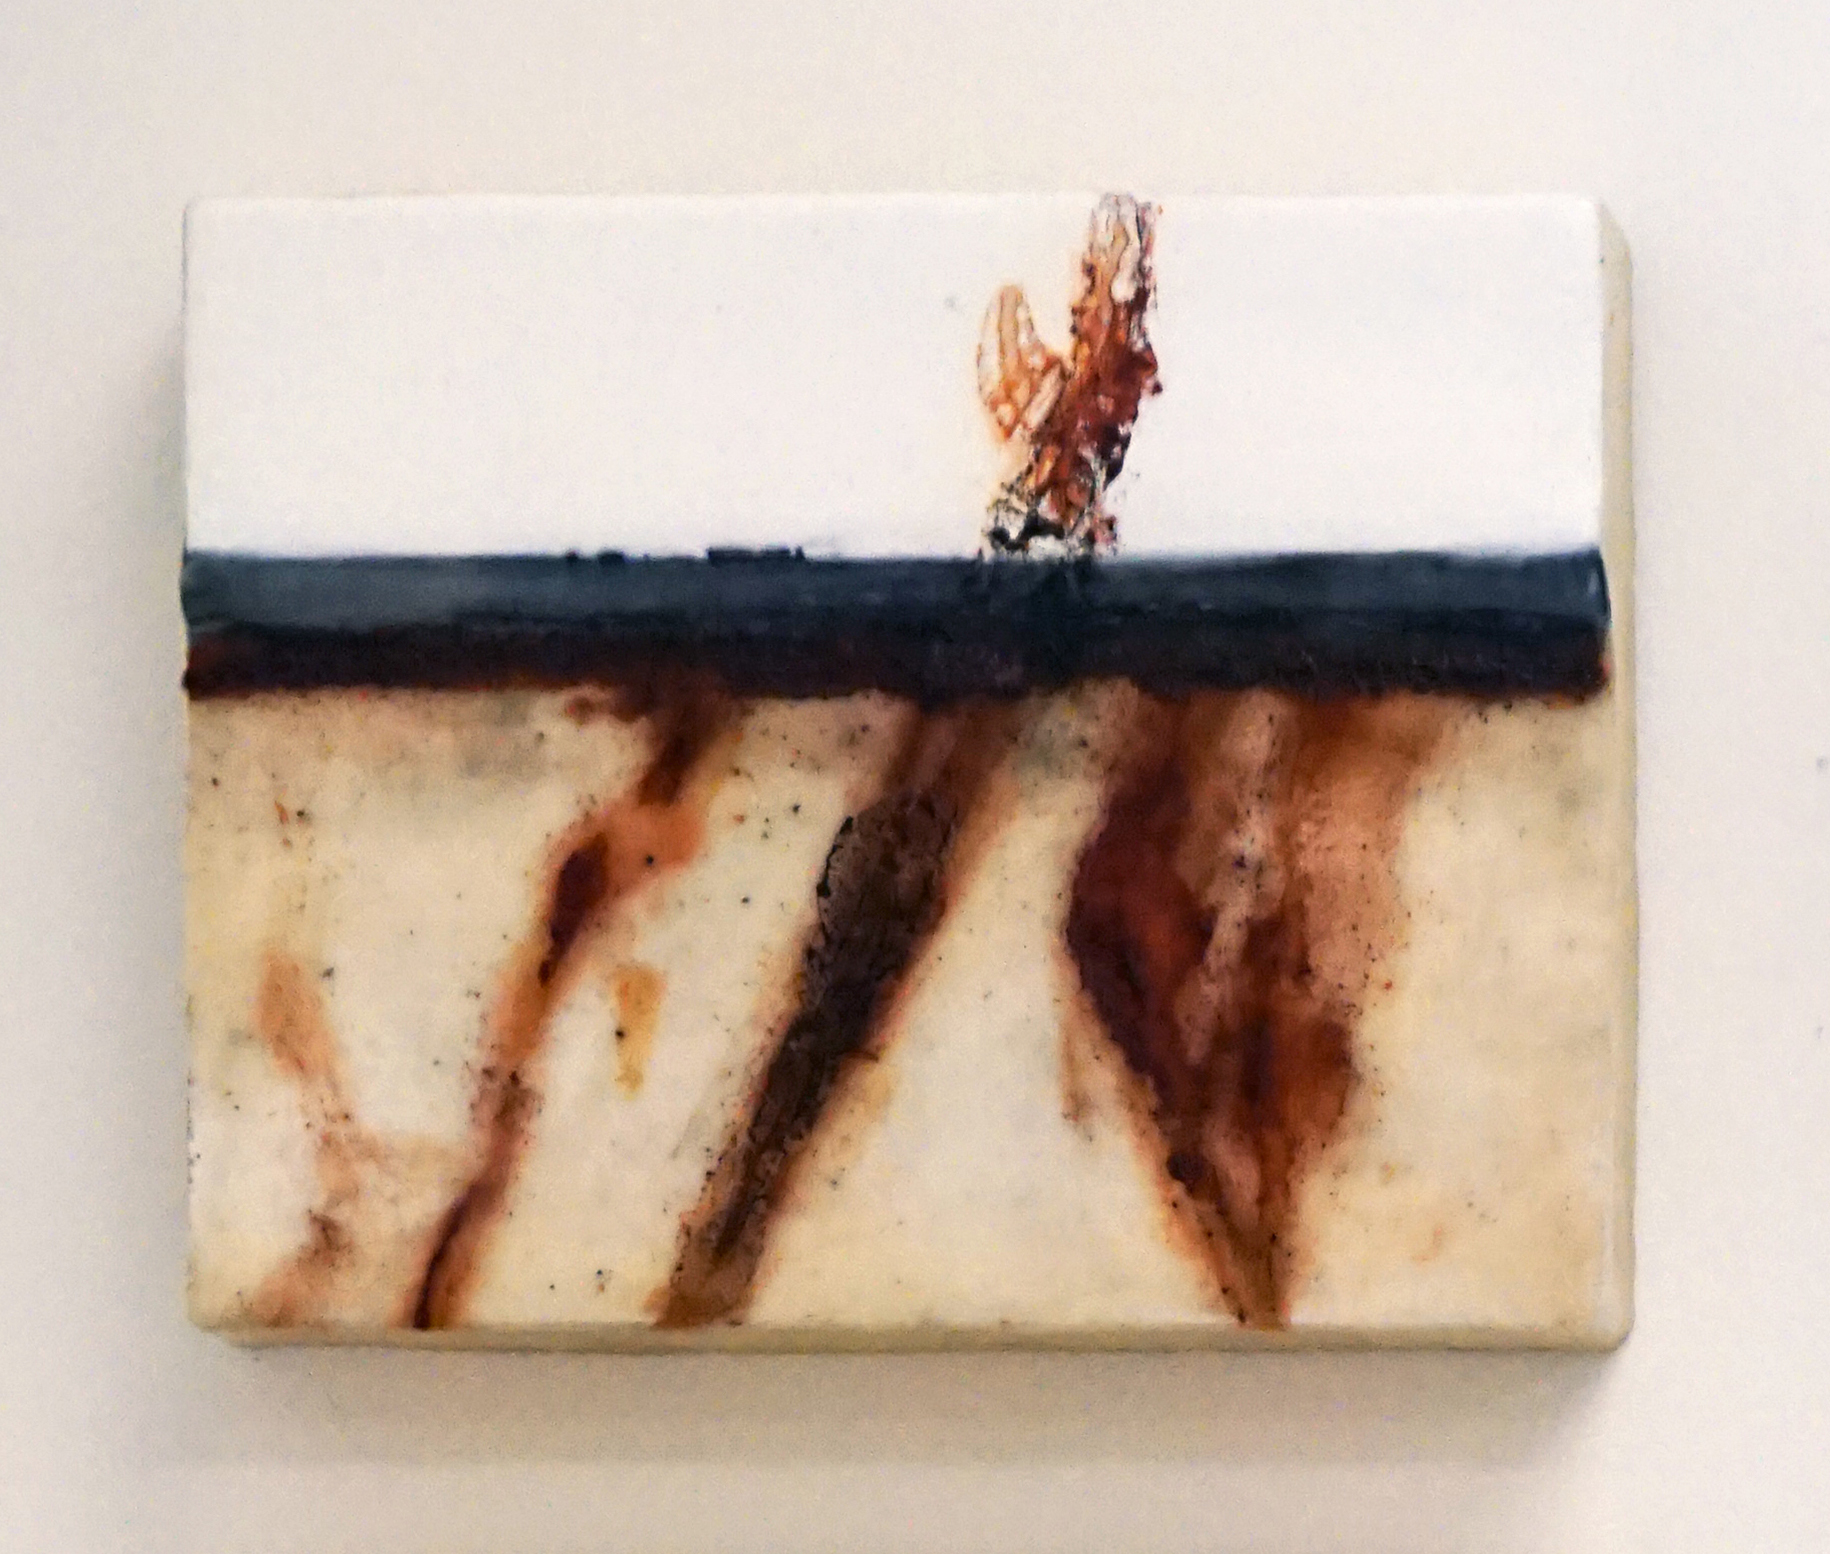 13. Marisa Tindall,  Nature Unearthed 6 , 2017, wax, ground marri charcoal, resin on ply, $190